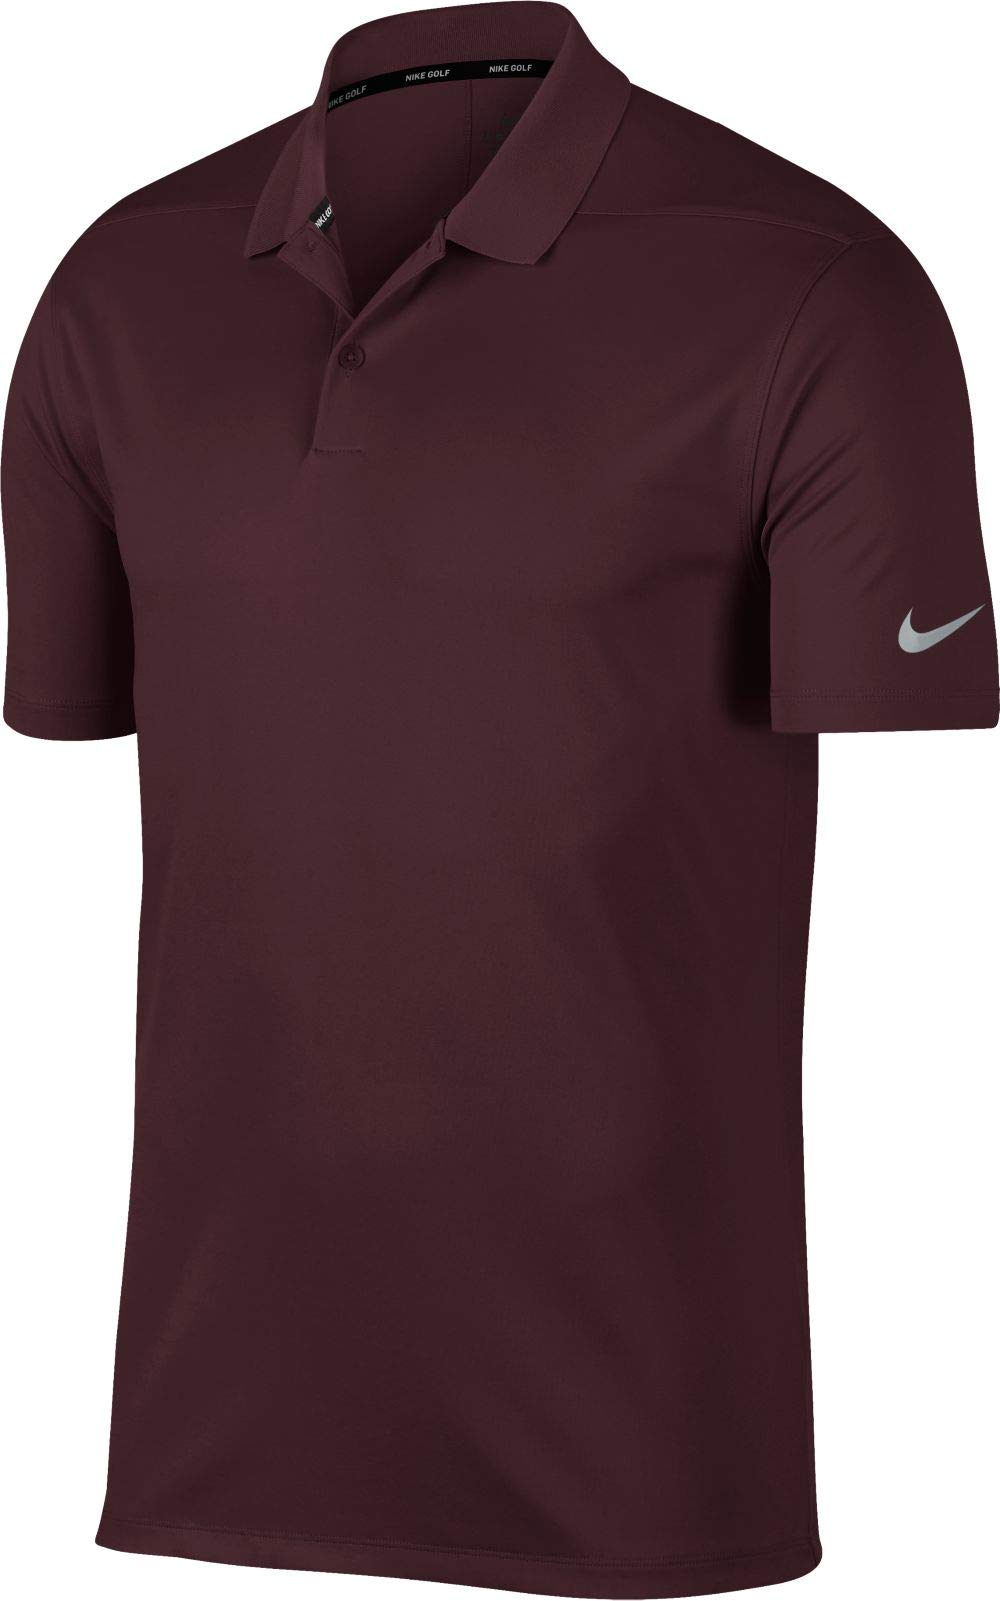 NIKE Men's Dry Victory Solid Golf Polo (Burgundy Crush/Black, Large)